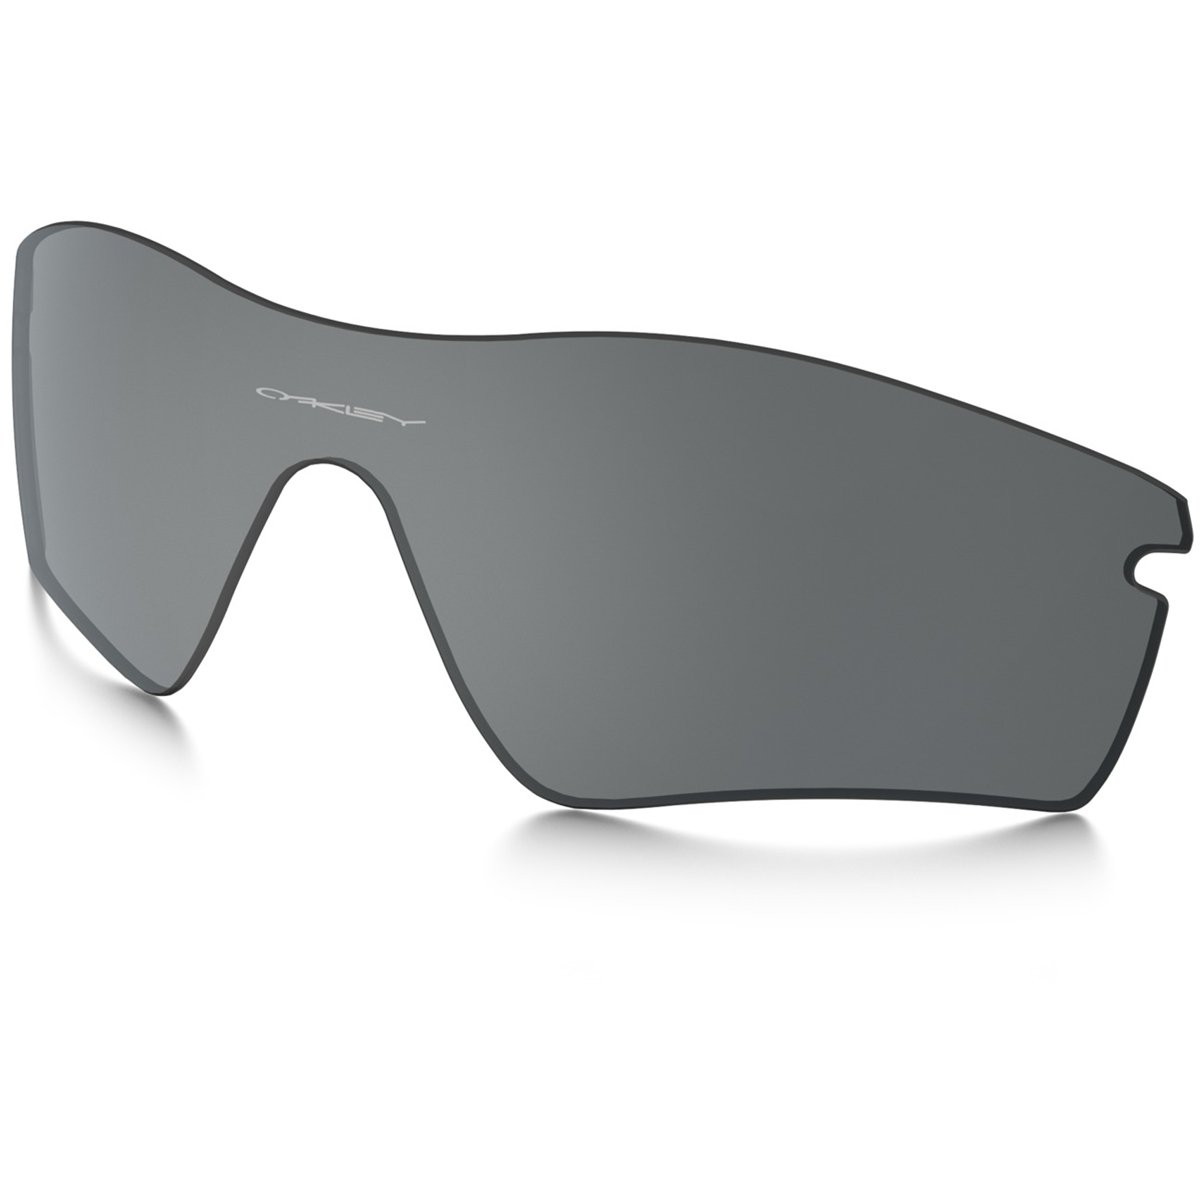 Oakley Men's Radar Path Sunglasses Replacement Lens, Black Iridium Polarized, 33 mm by Oakley